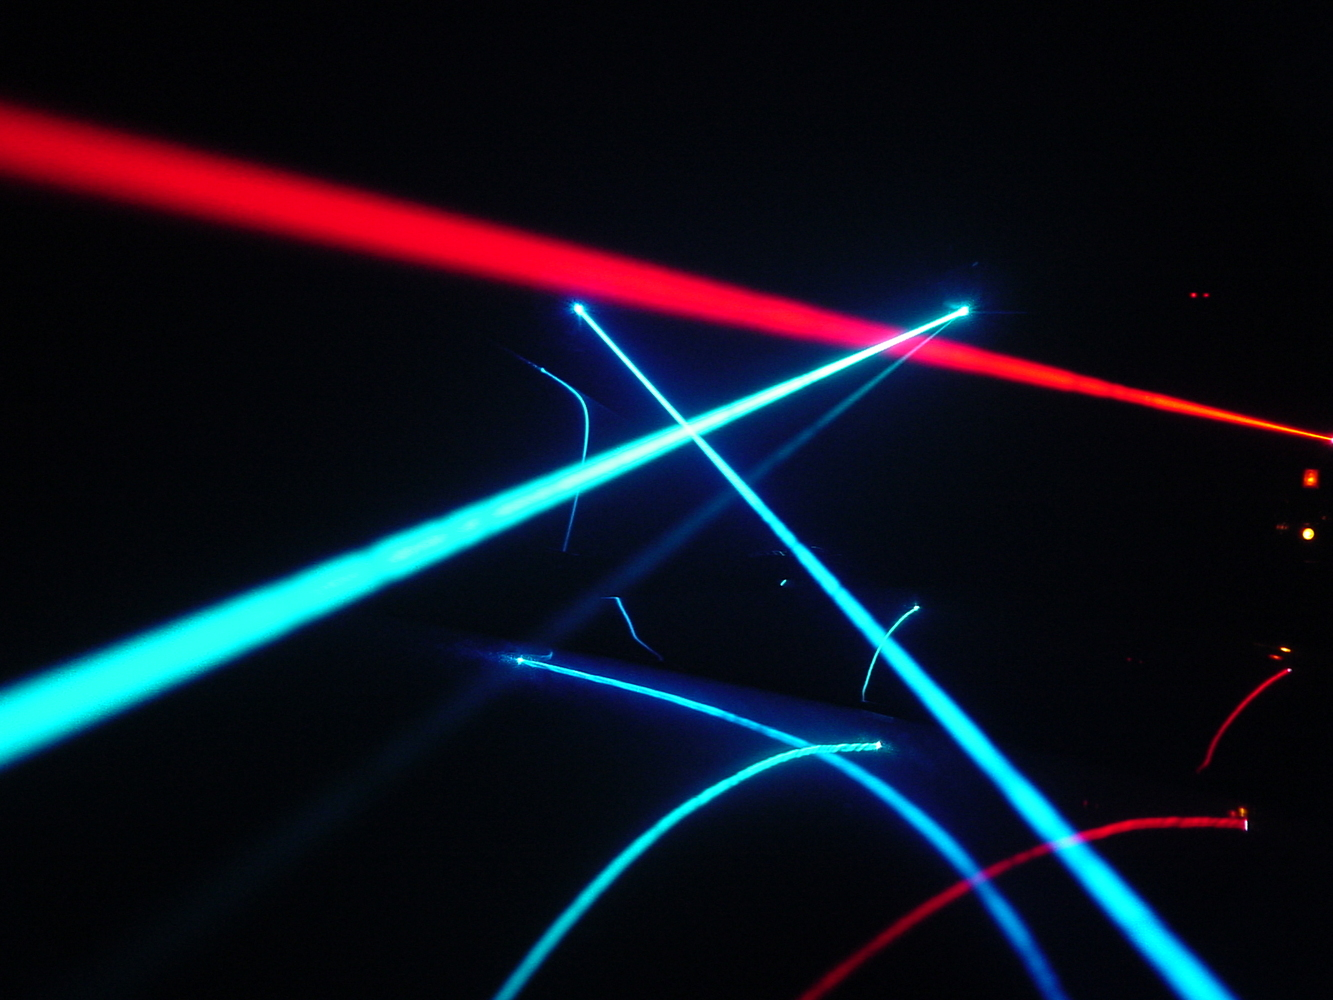 Argon-ion and He-Ne laser beams